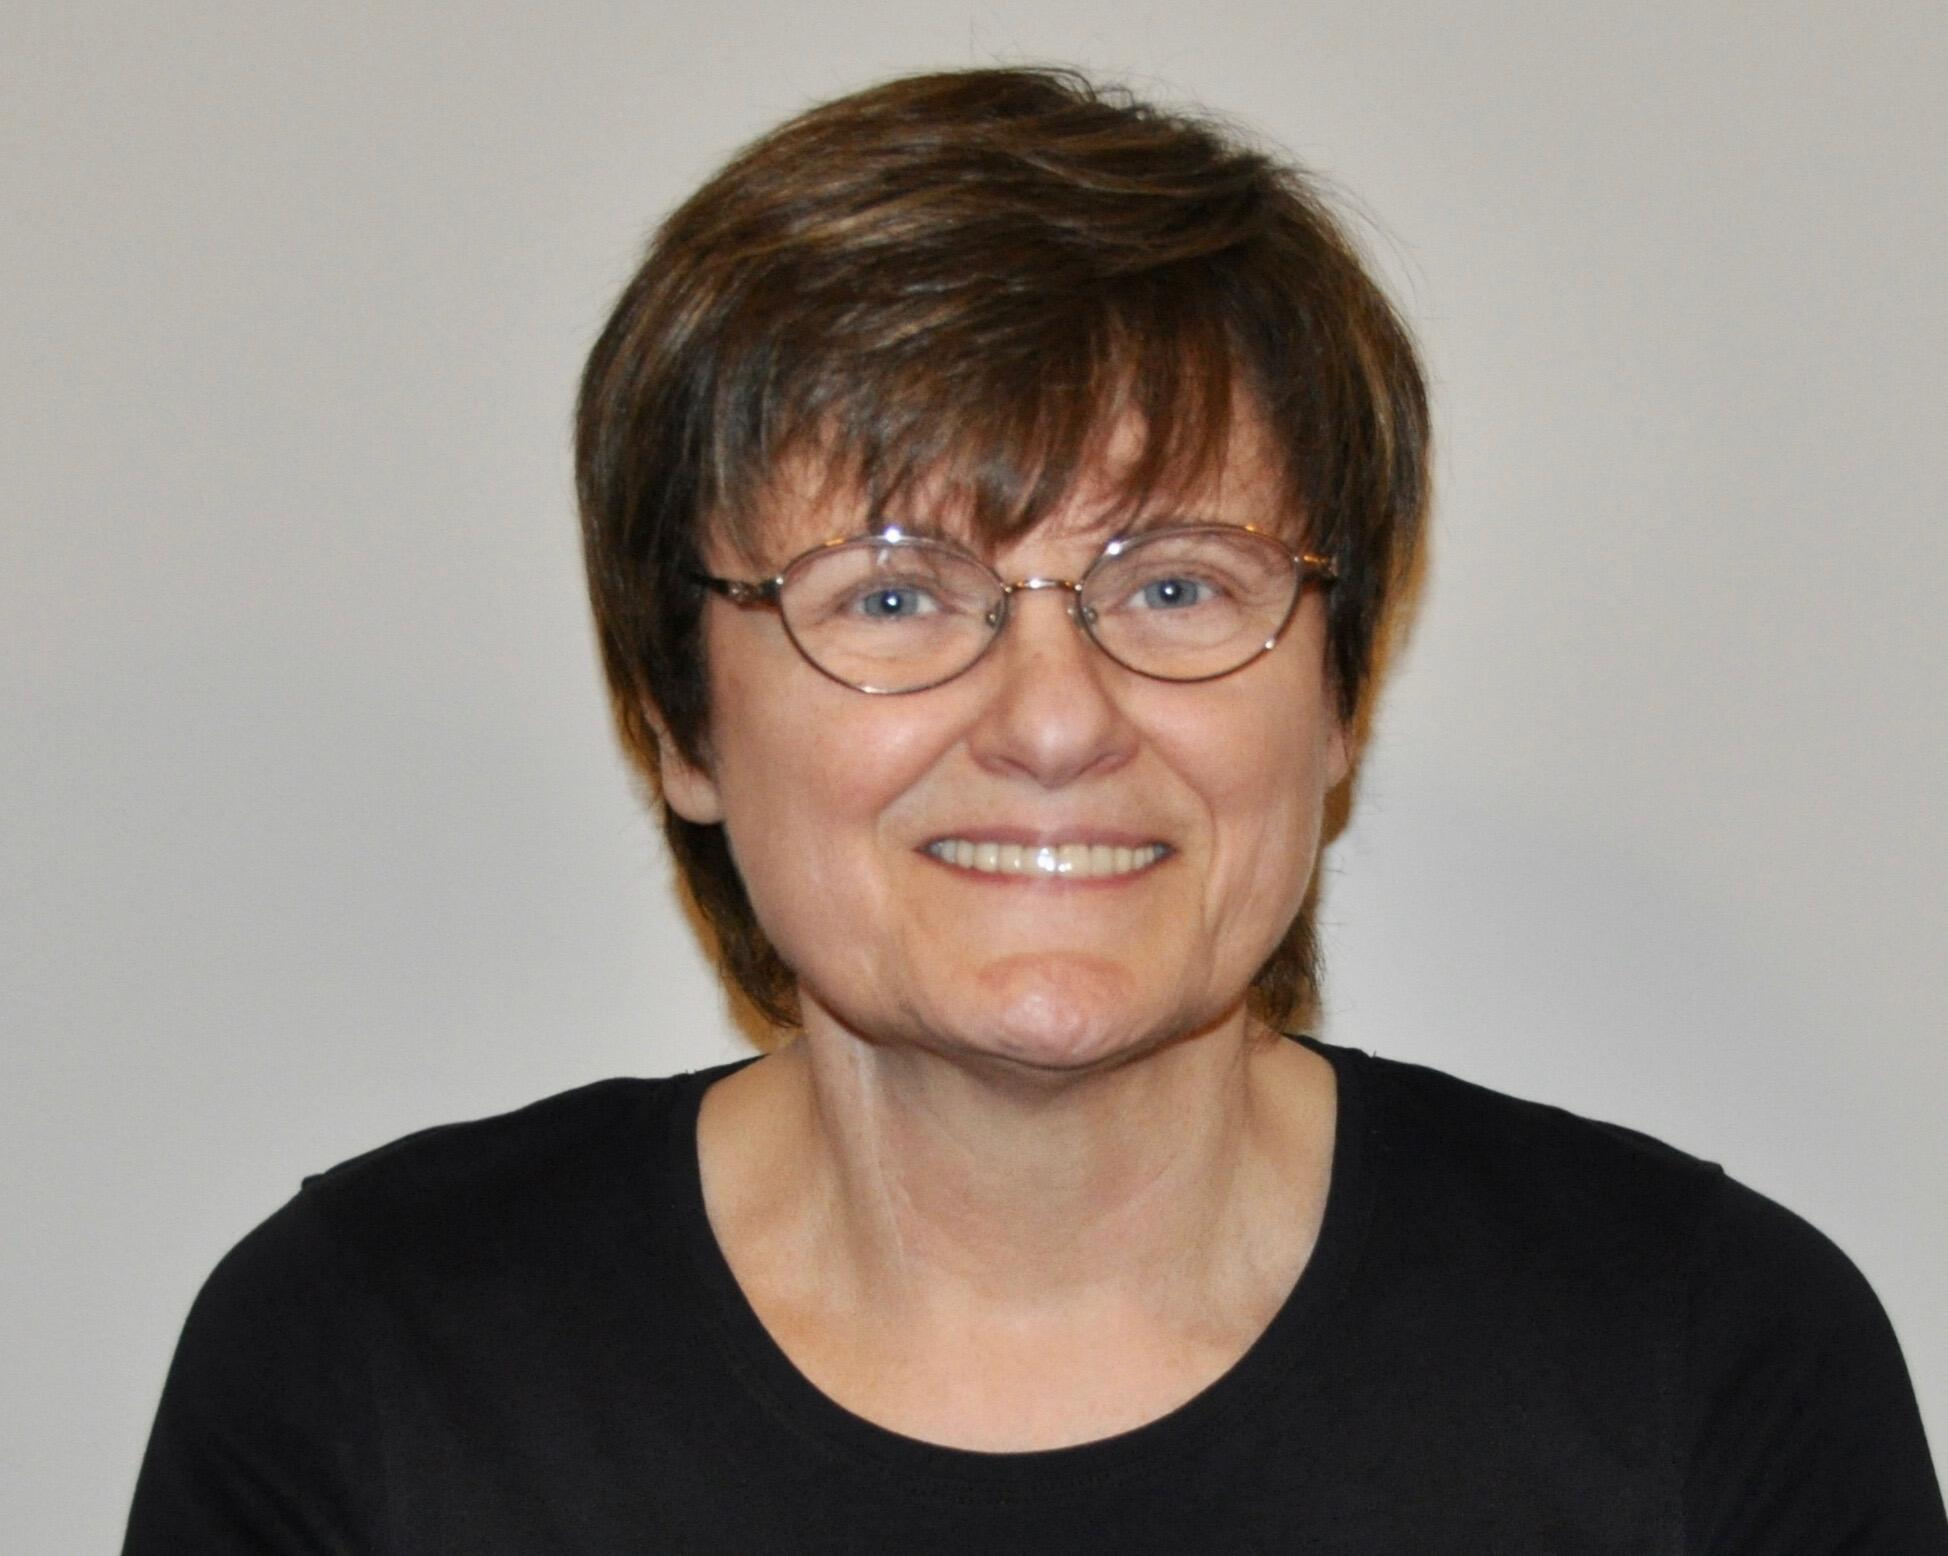 Katalin Kariko spent much of the 1990s writing grant applications to fund her investigations into 'messenger ribonucleic acid' -- genetic molecules that tell cells what proteins to make, essential to keeping our bodies alive and healthy